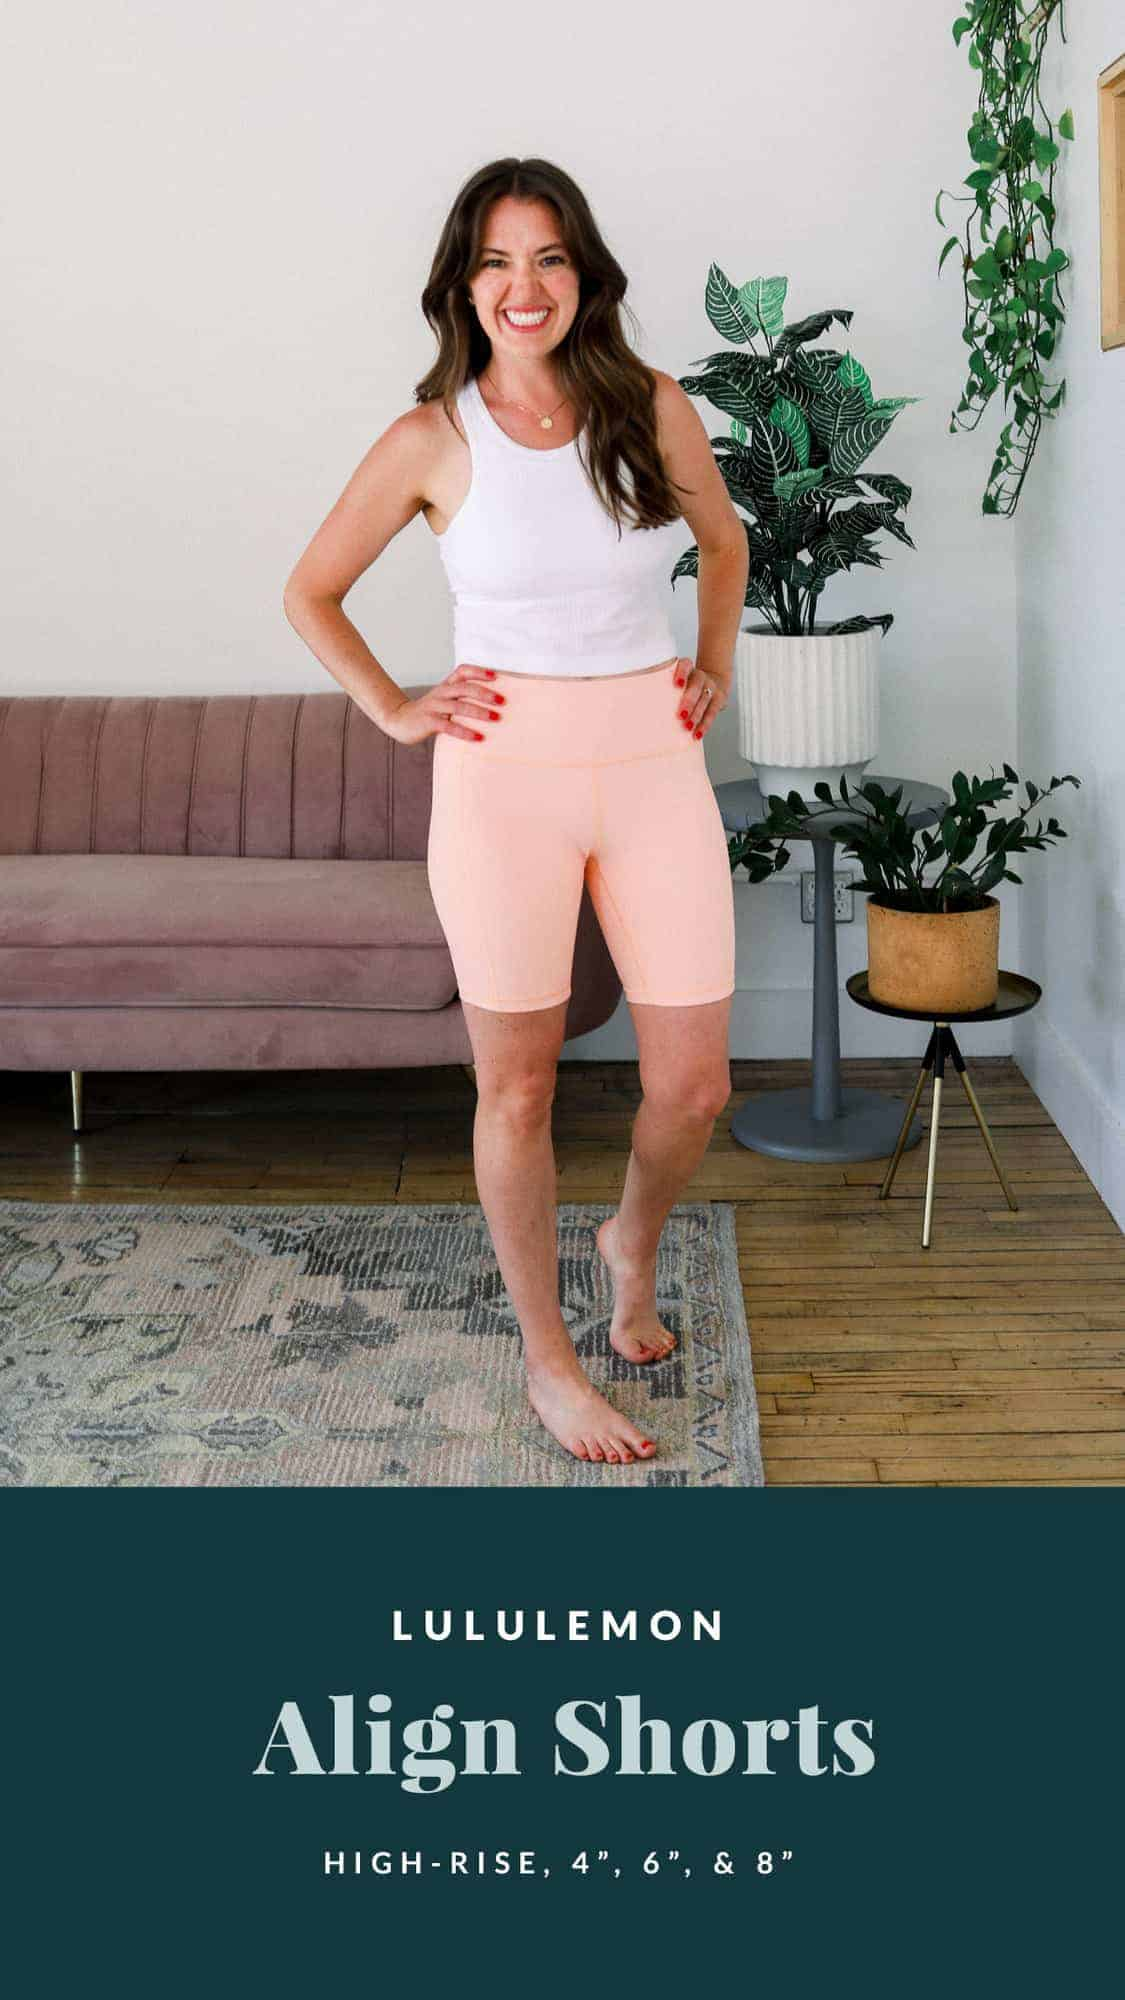 linley wearing lululemon align shorts in a peach color